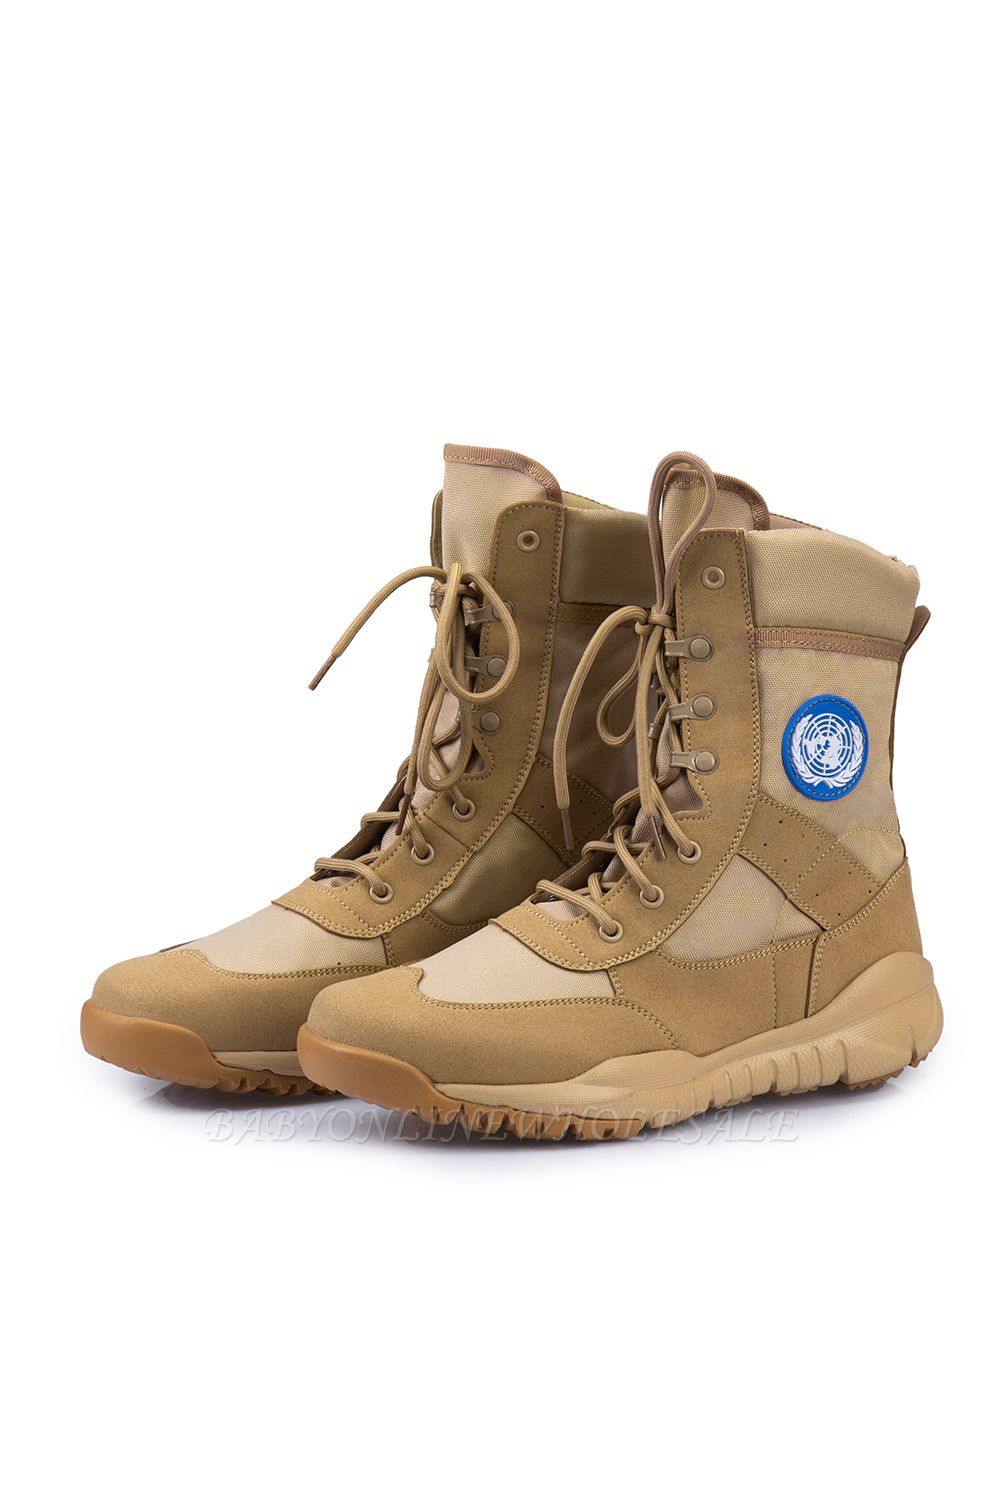 Men's Military Combat Boots Lightweight Military and Tactical Boot